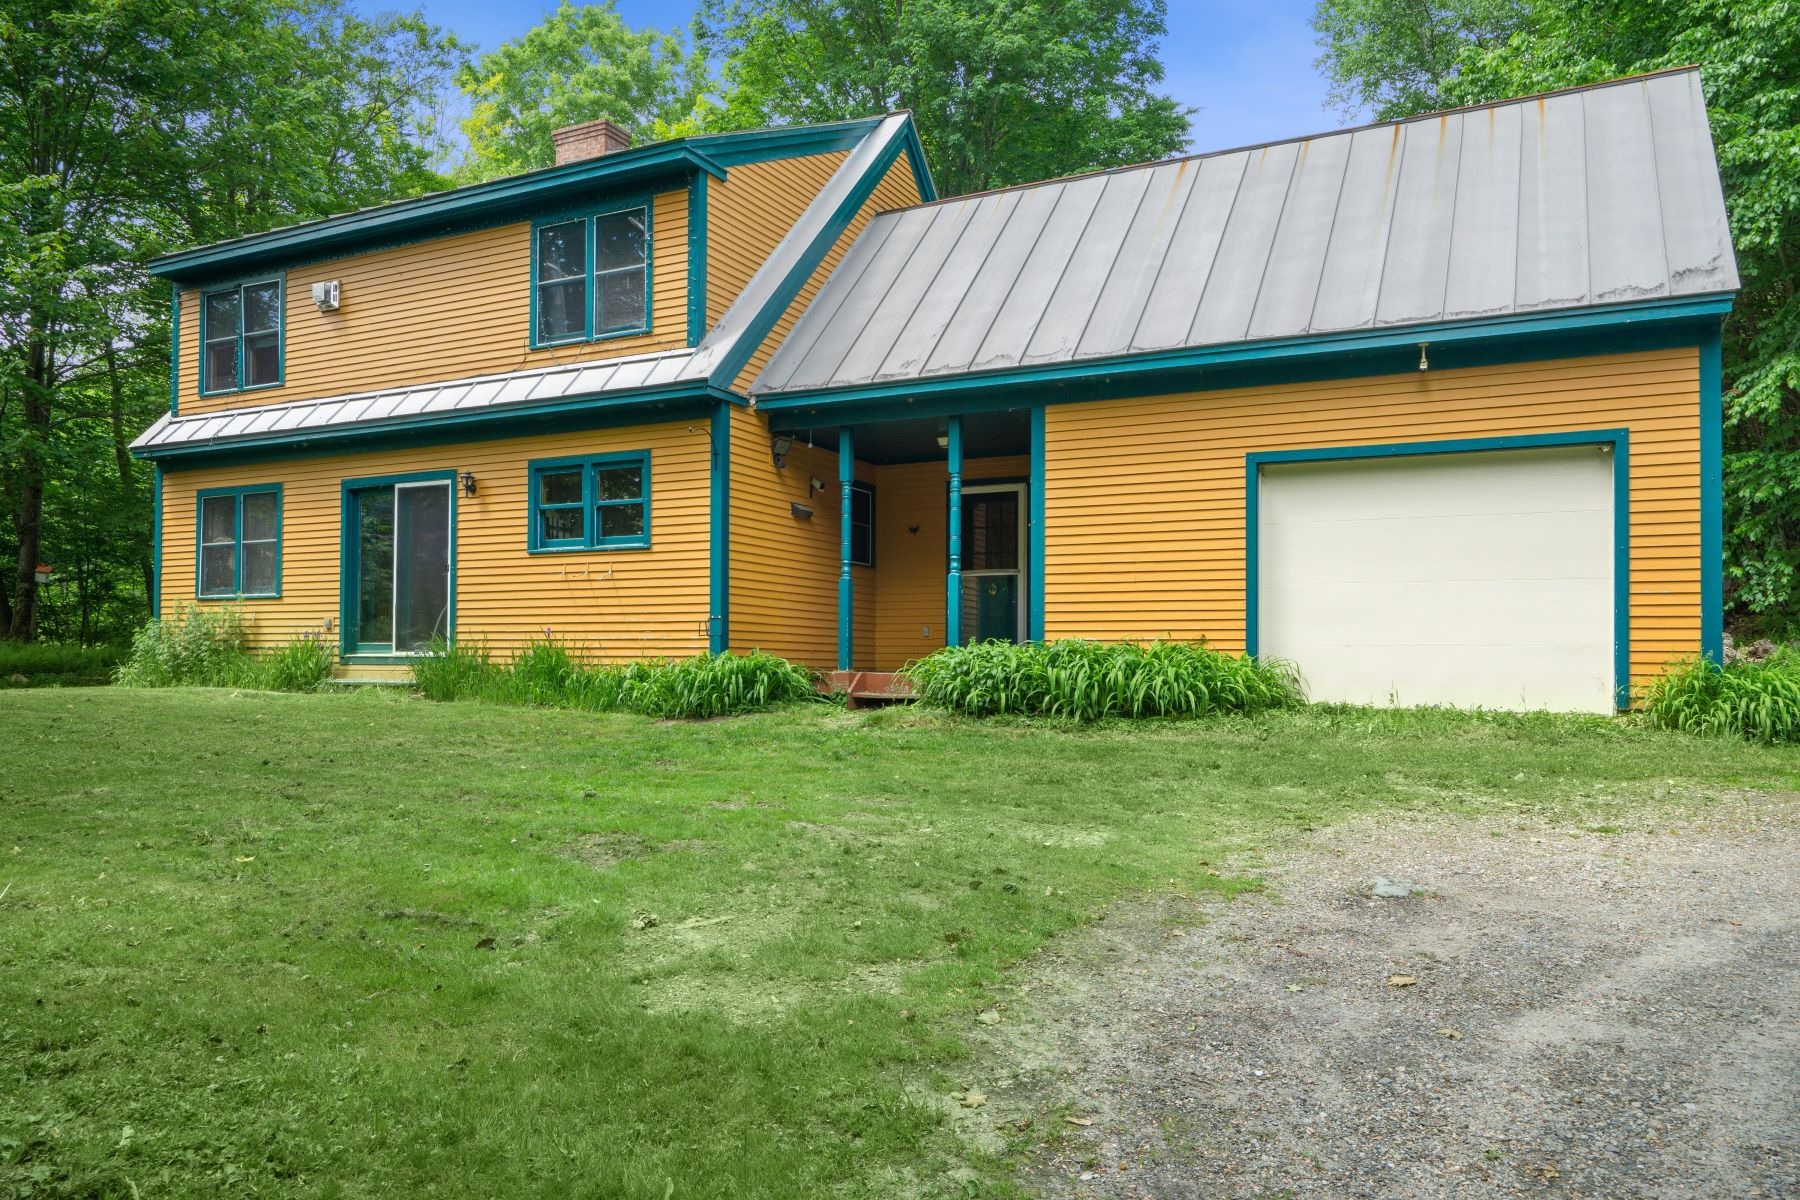 Single Family Homes for Sale at 604 Mountain View Loop, Rochester 604 Mountain View Loop Rochester, Vermont 05767 United States